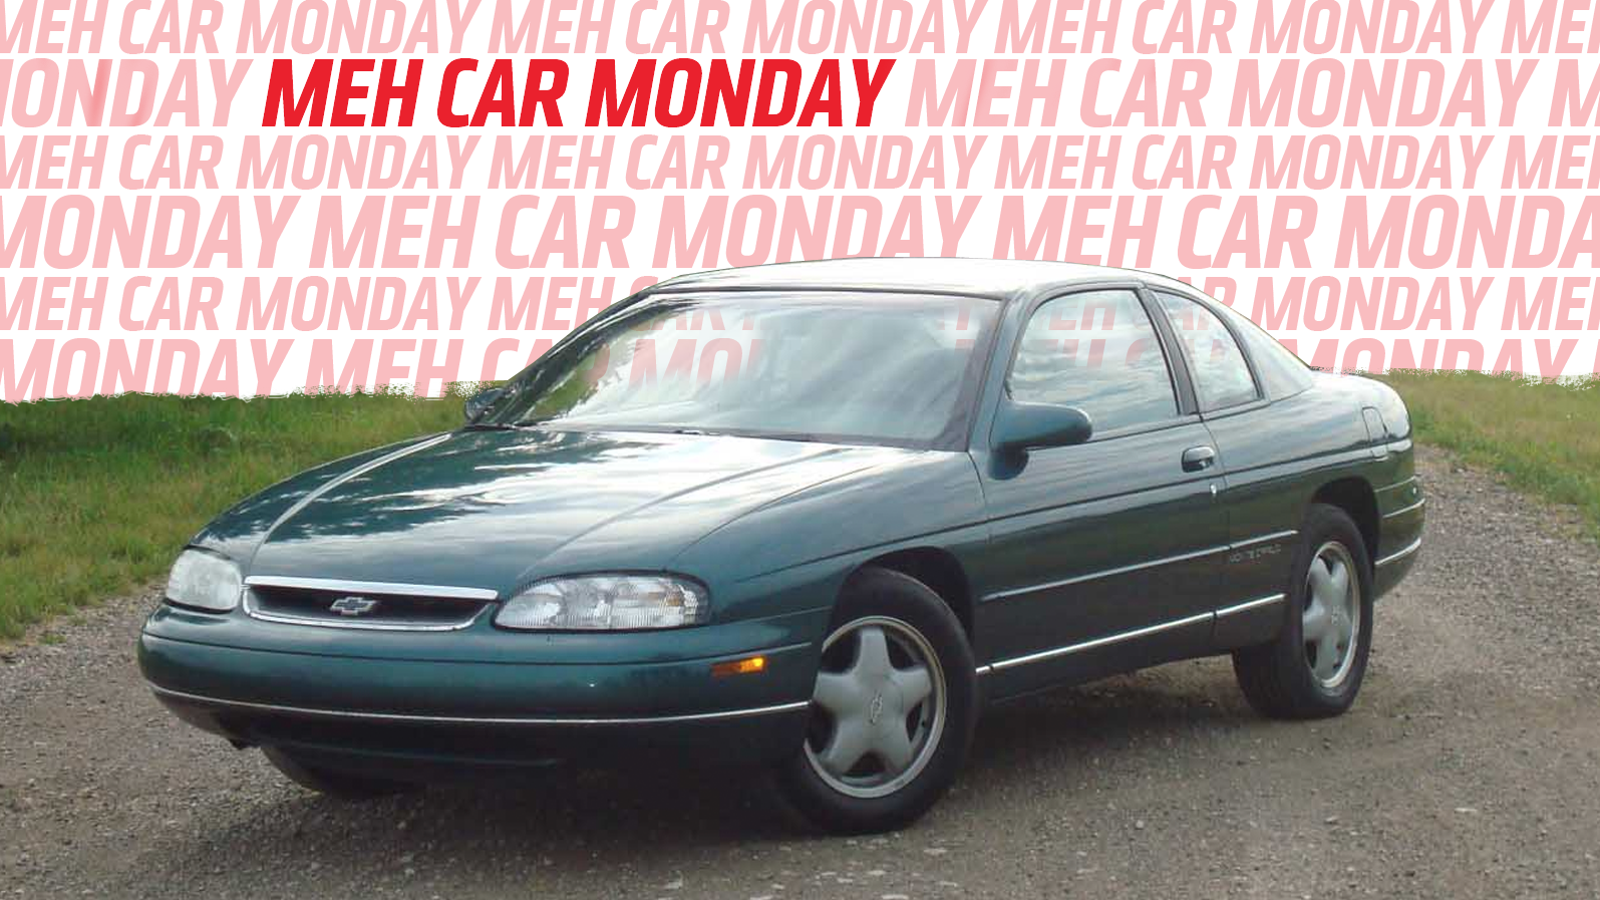 All Chevy 1999 chevrolet monte carlo z34 : Meh Car Monday: The 1994-1999 Chevy Monte Carlo Was The One To Ignore